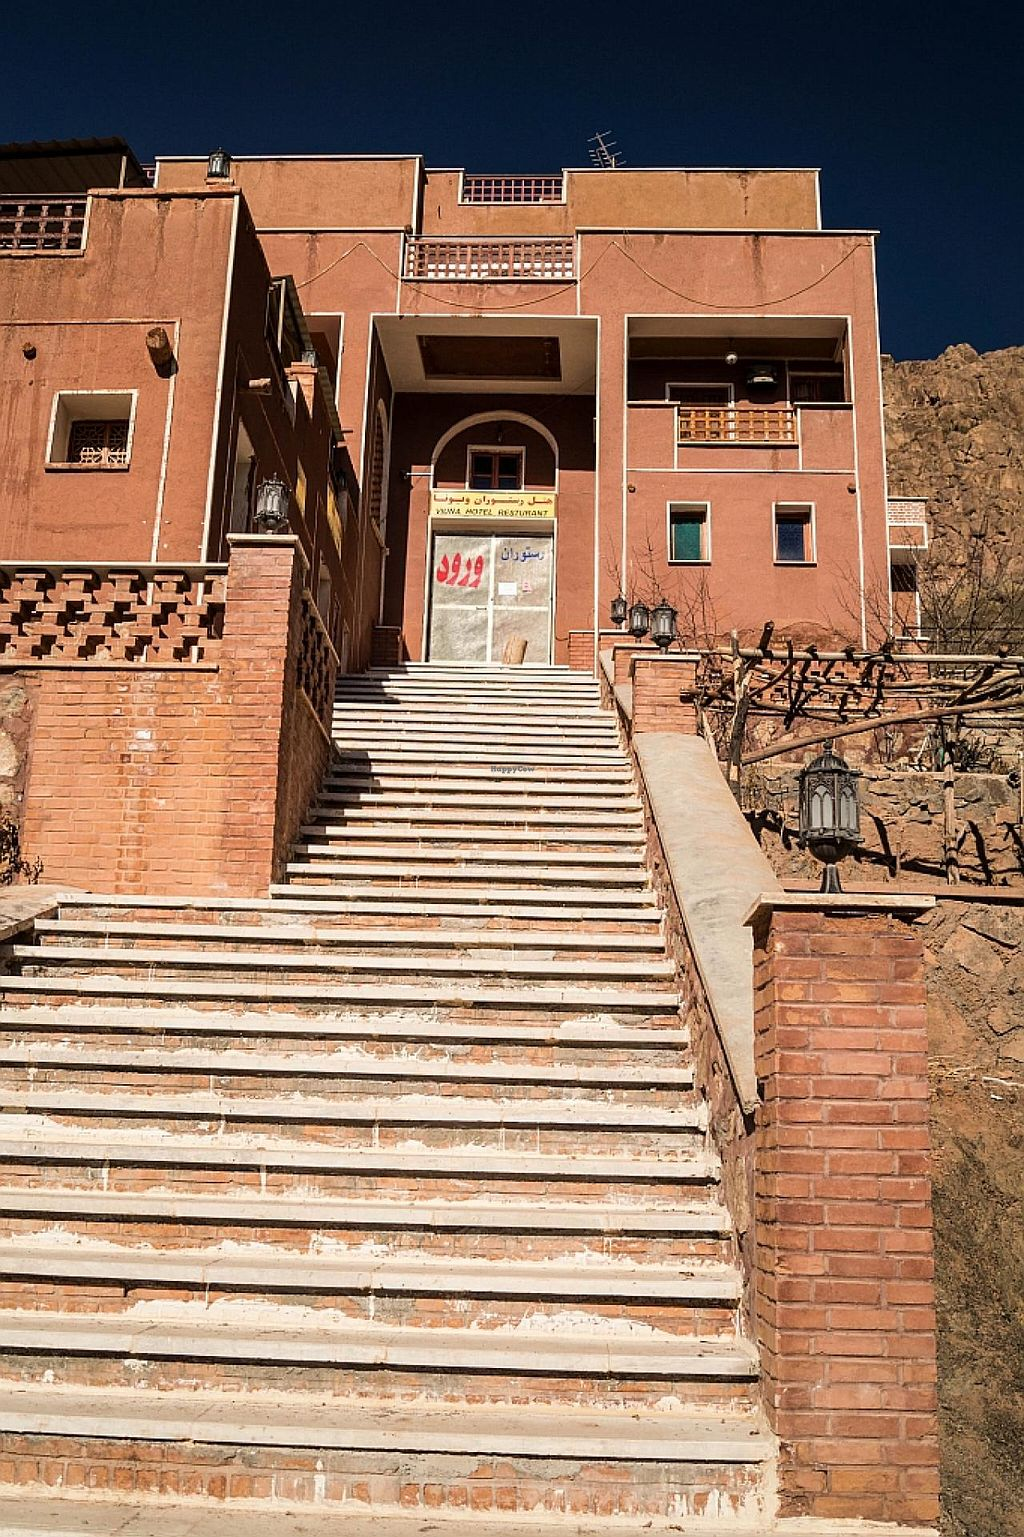 """Photo of Viuna Hotel and Restaurant  by <a href=""""/members/profile/danielpoland"""">danielpoland</a> <br/>Abyaneh Viuna Hotel that serves vegan food. Owner know difference between vegan and vegetarian.  <br/> January 5, 2015  - <a href='/contact/abuse/image/54314/89594'>Report</a>"""